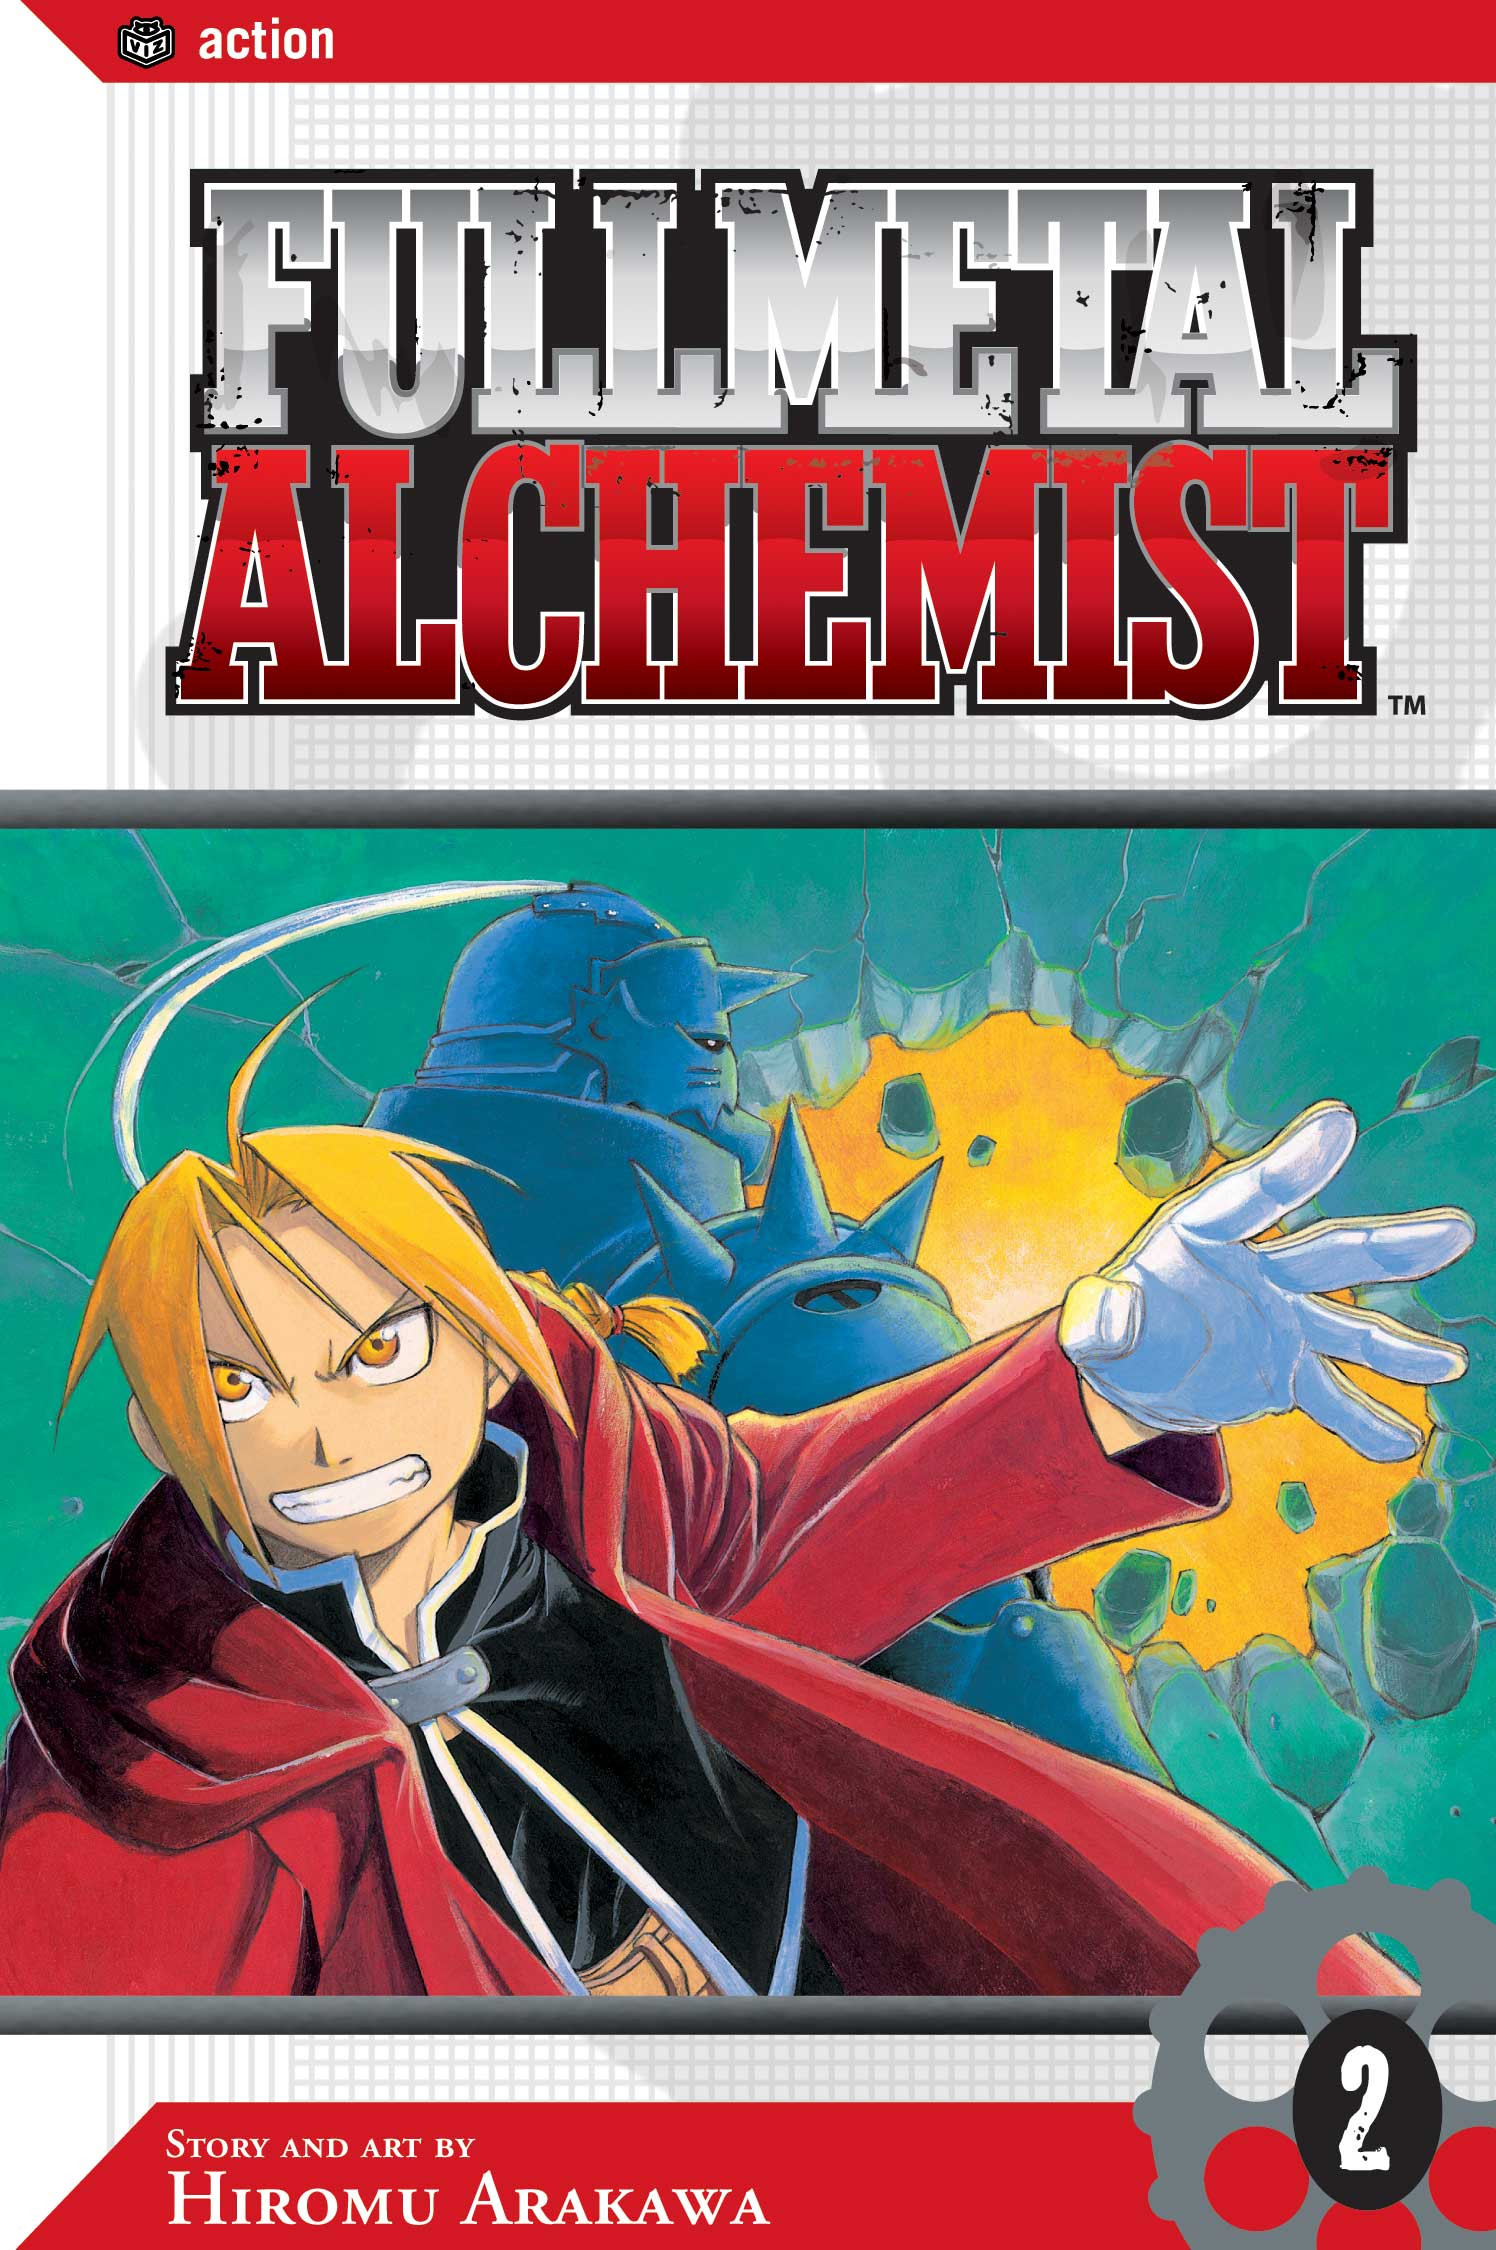 fullmetal alchemist vol book by hiromu arakawa official  book cover image jpg fullmetal alchemist vol 2